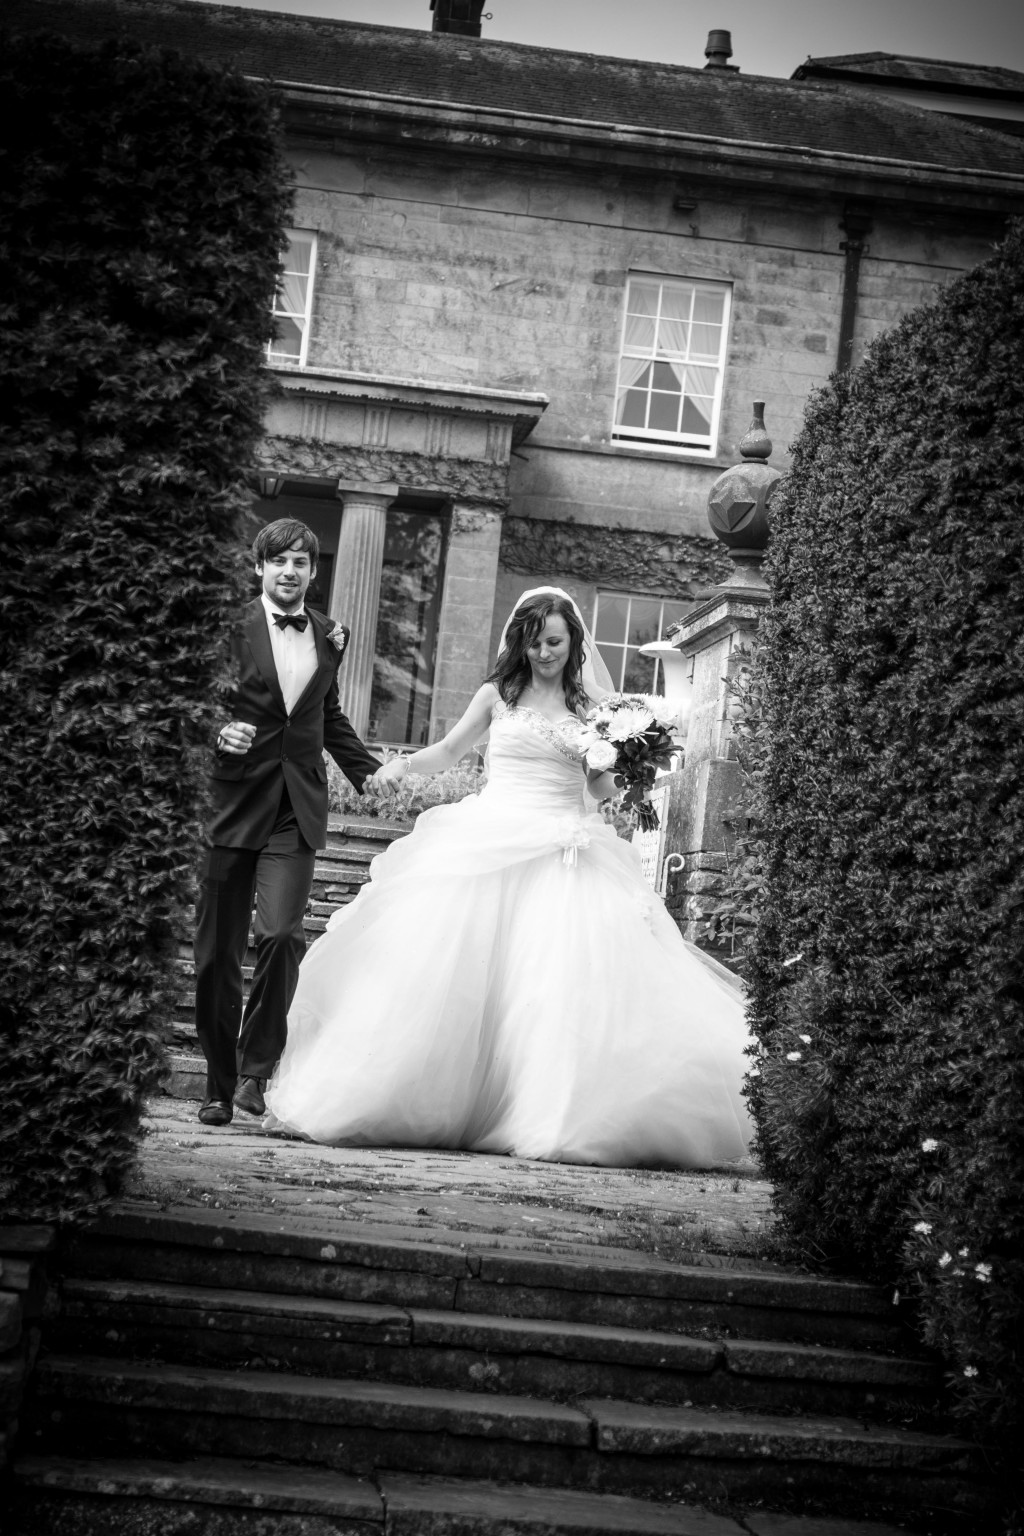 http://Wedding%20photography%20North%20East%20of%20England%20-%20Doxford%20Hall